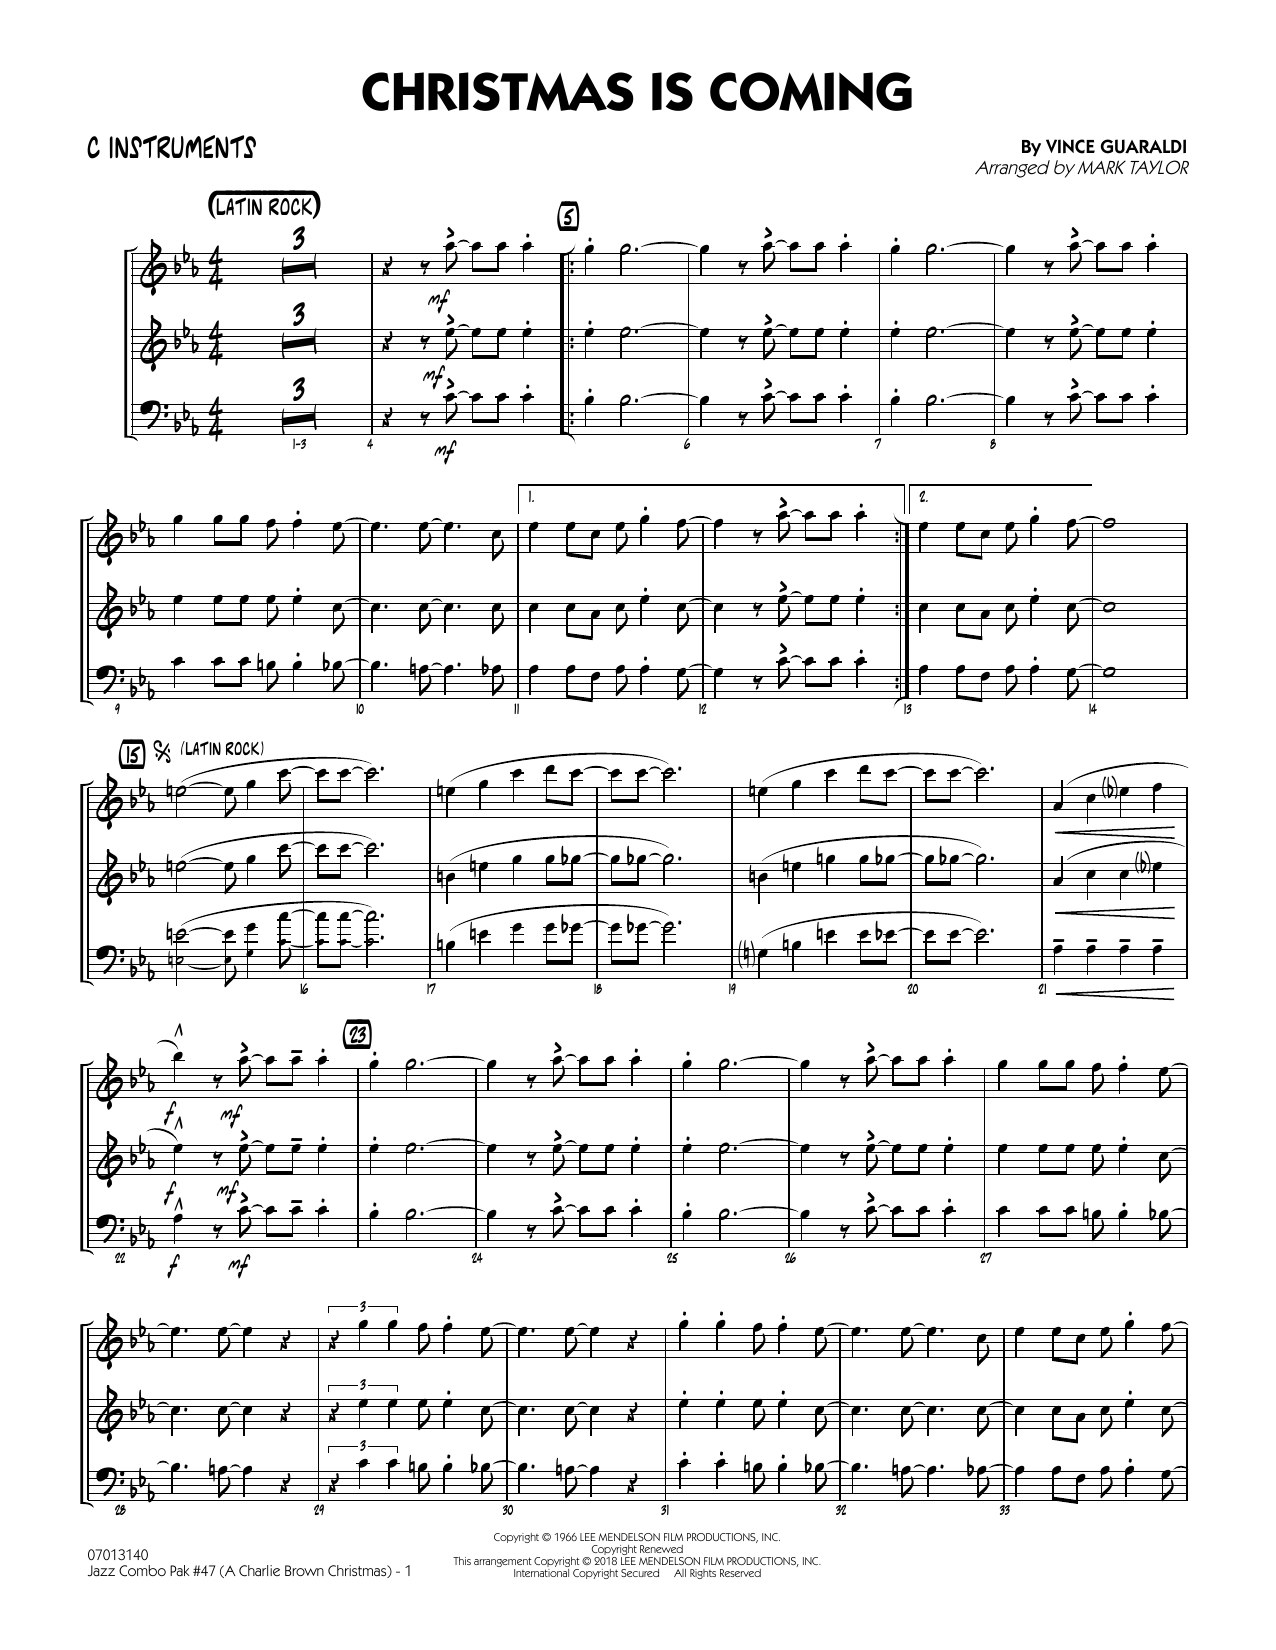 Vince Guaraldi Jazz Combo Pak #47 (Charlie Brown Christmas) (arr. Mark Taylor) - C Instruments sheet music notes and chords. Download Printable PDF.